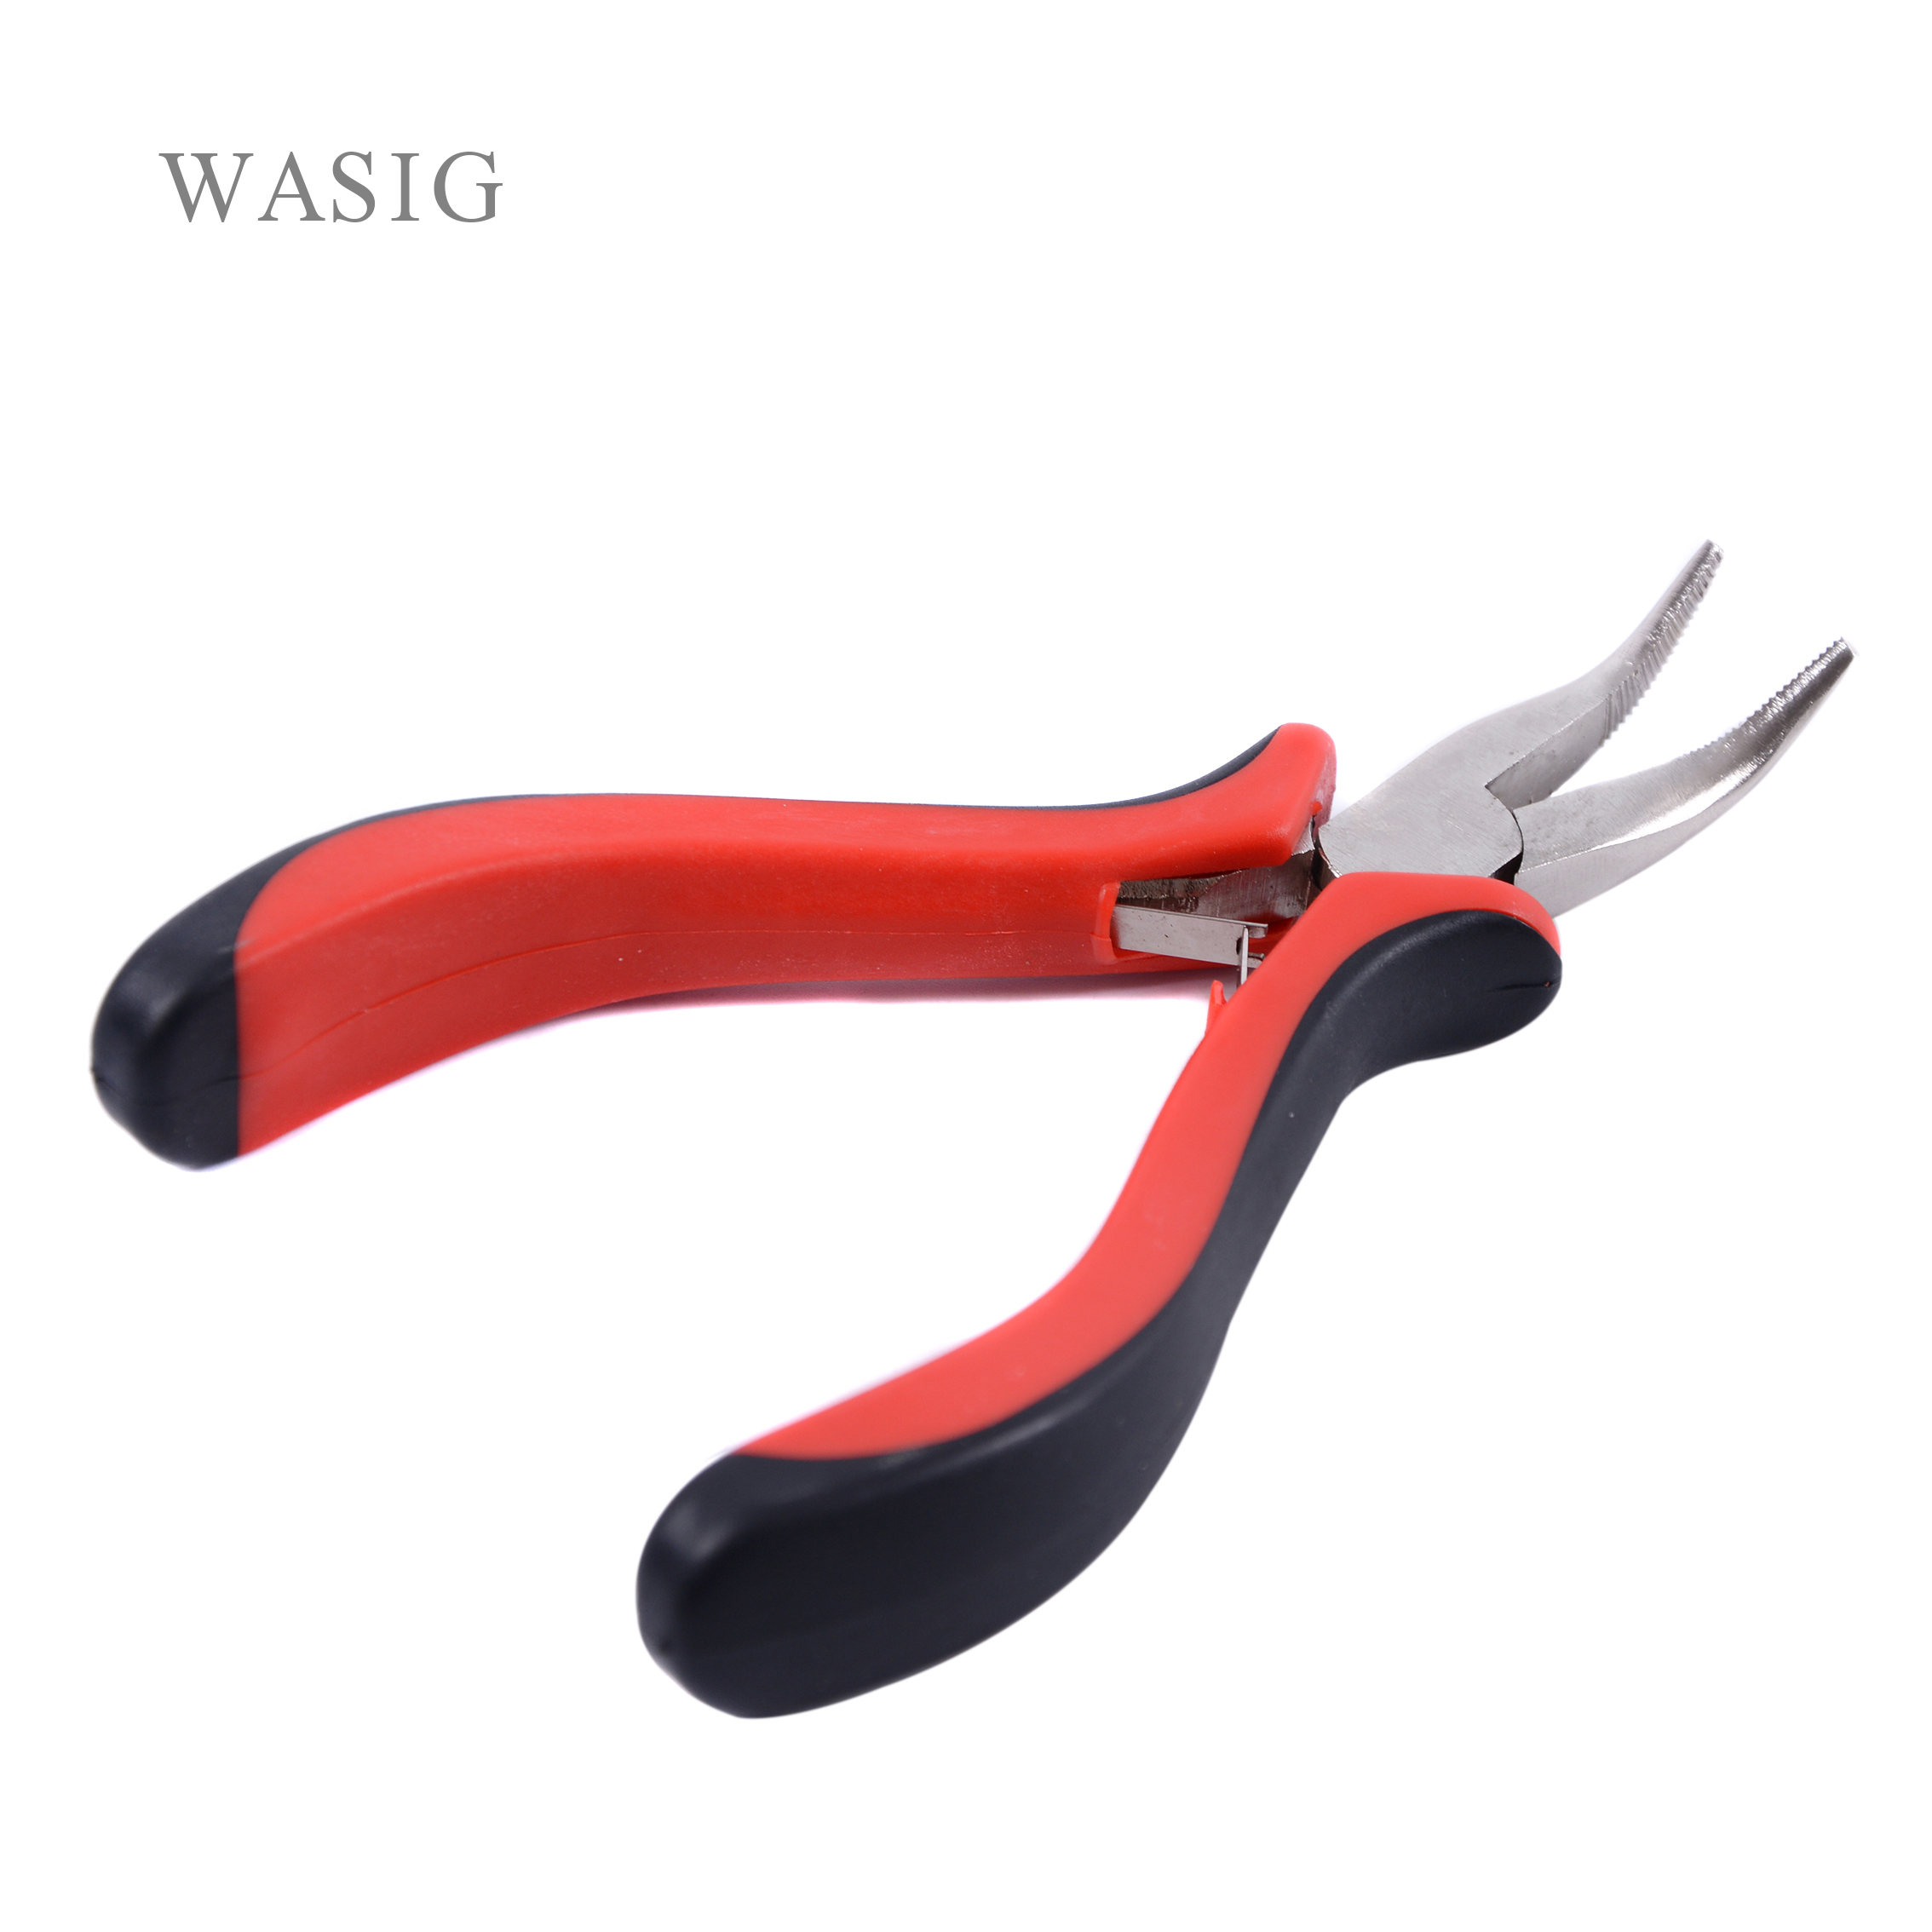 Bend Tip Pliers DIY Hair Extension Tool Clip Pliers For Micro Rings/links/beads & Feather Hair Extension